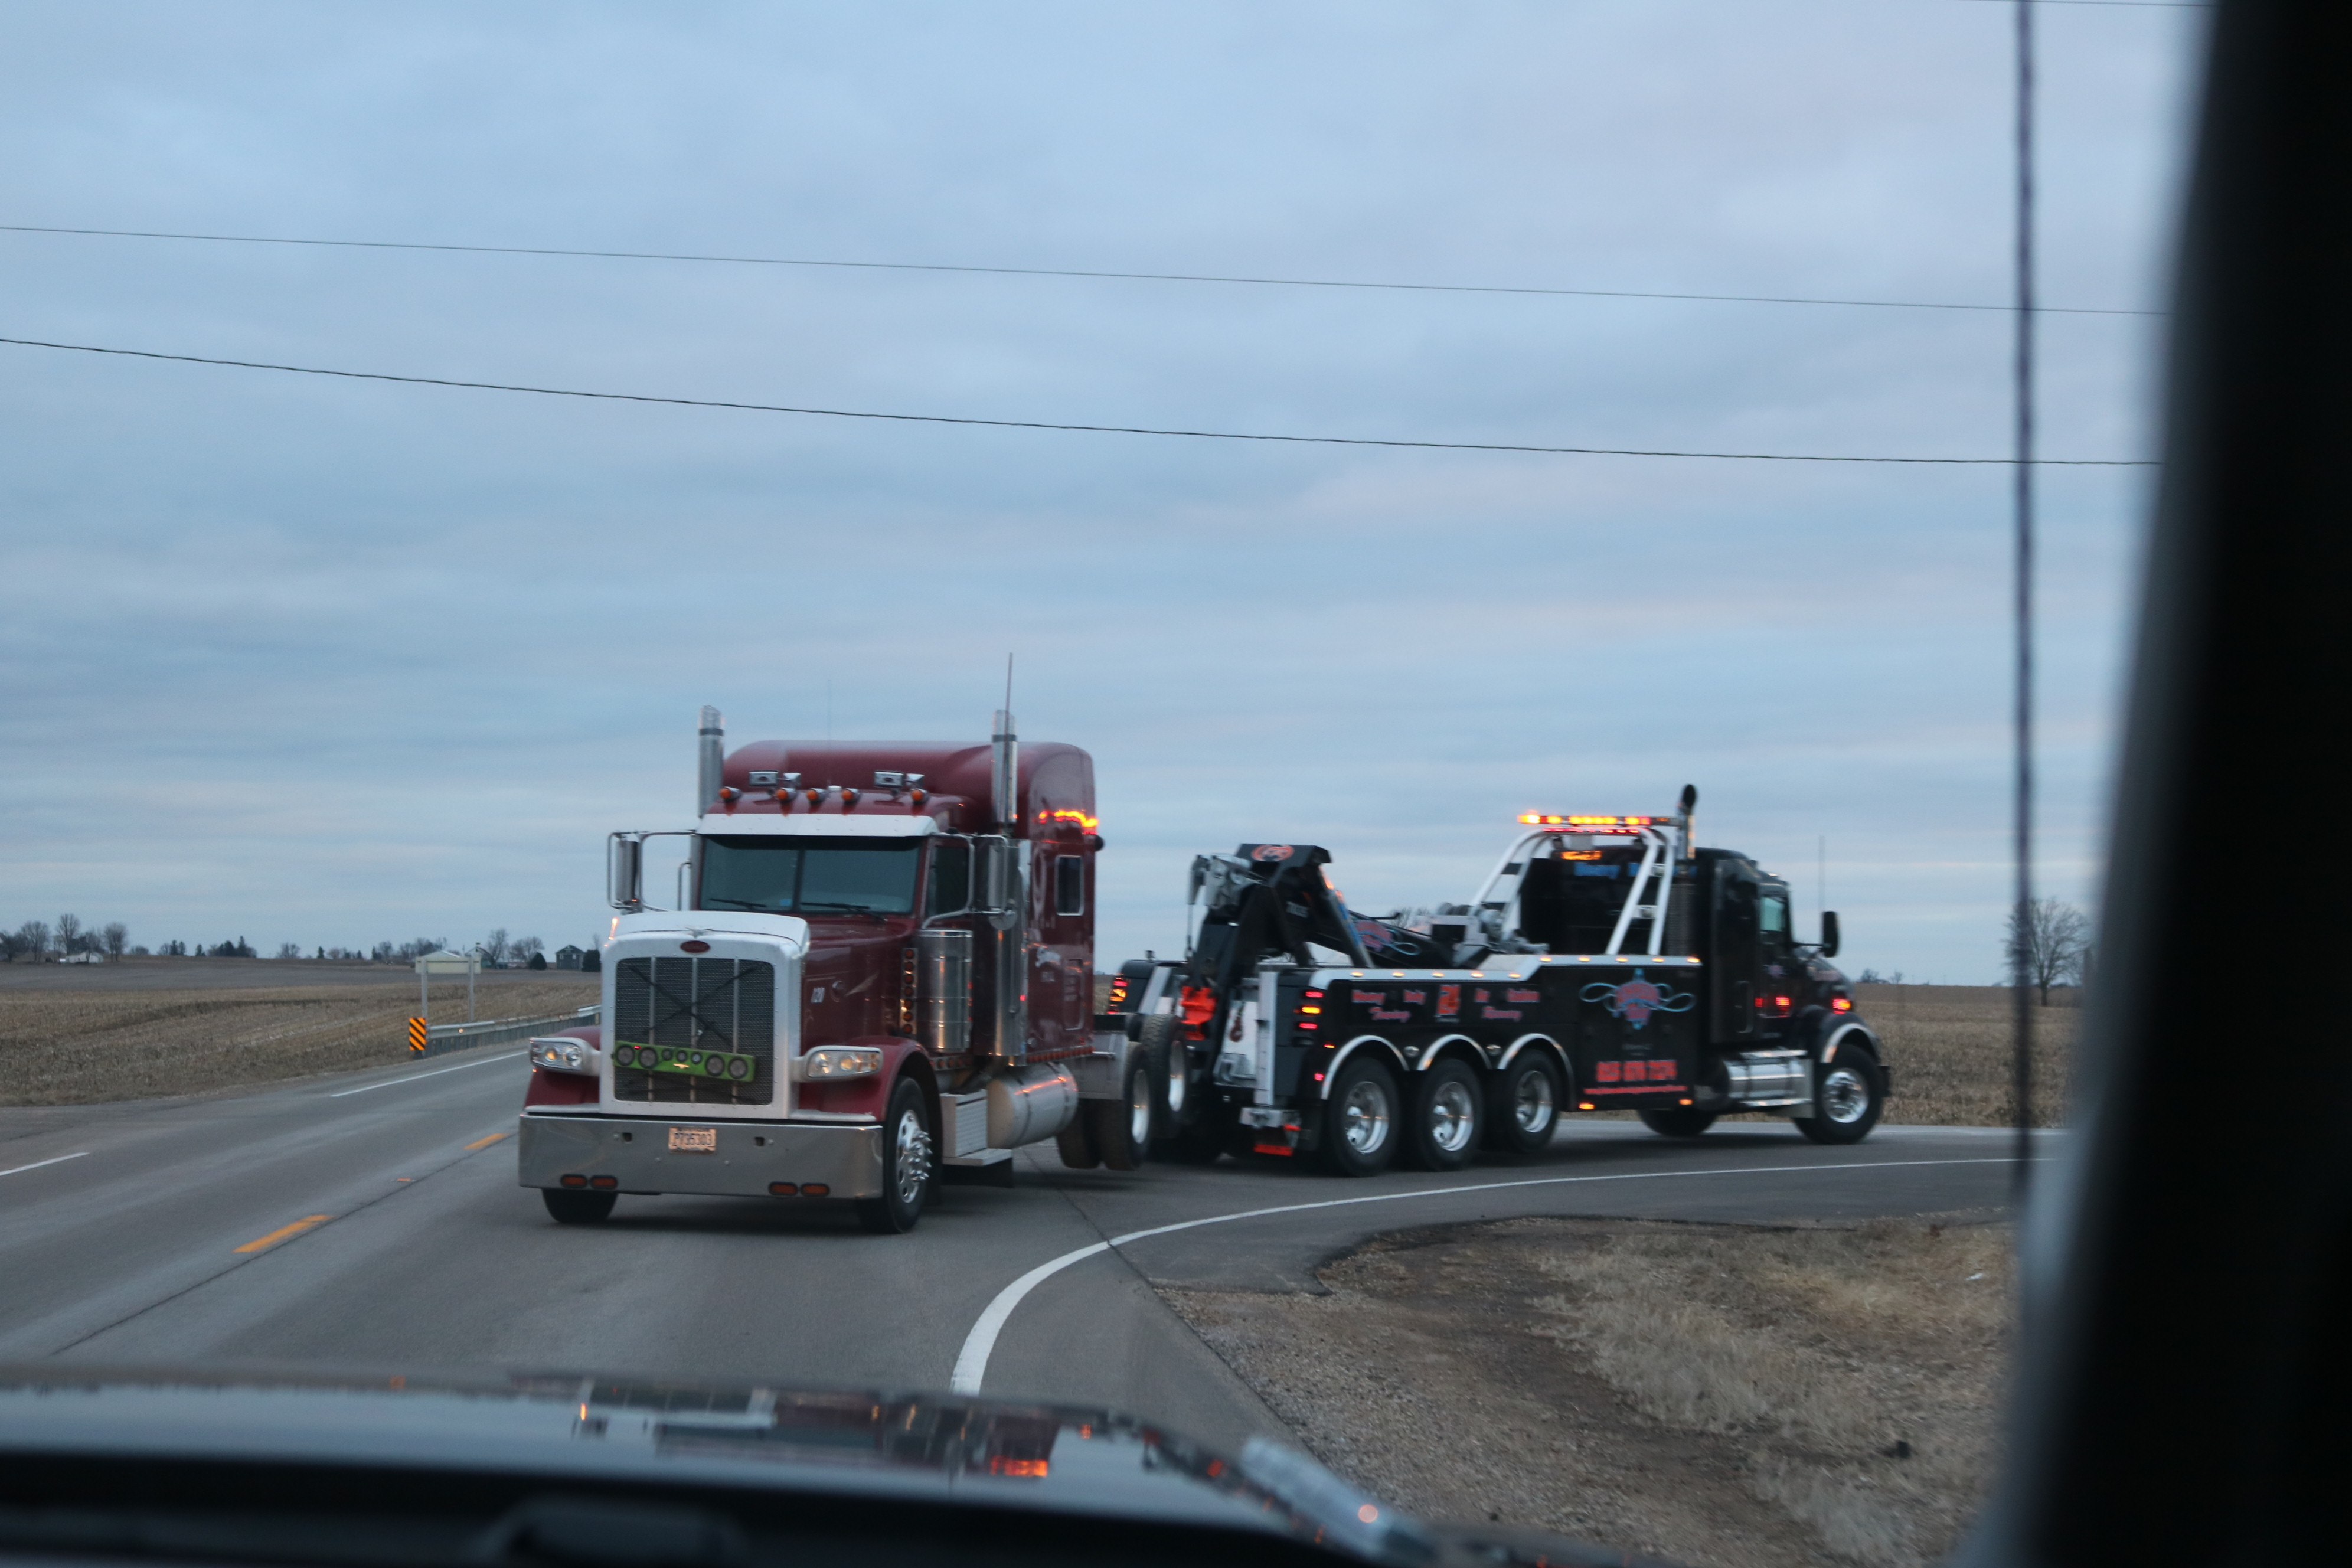 Car Detailing Springfield Il >> Towing Companies Rock Falls IL: Wrecker Services | 24 Hour ...